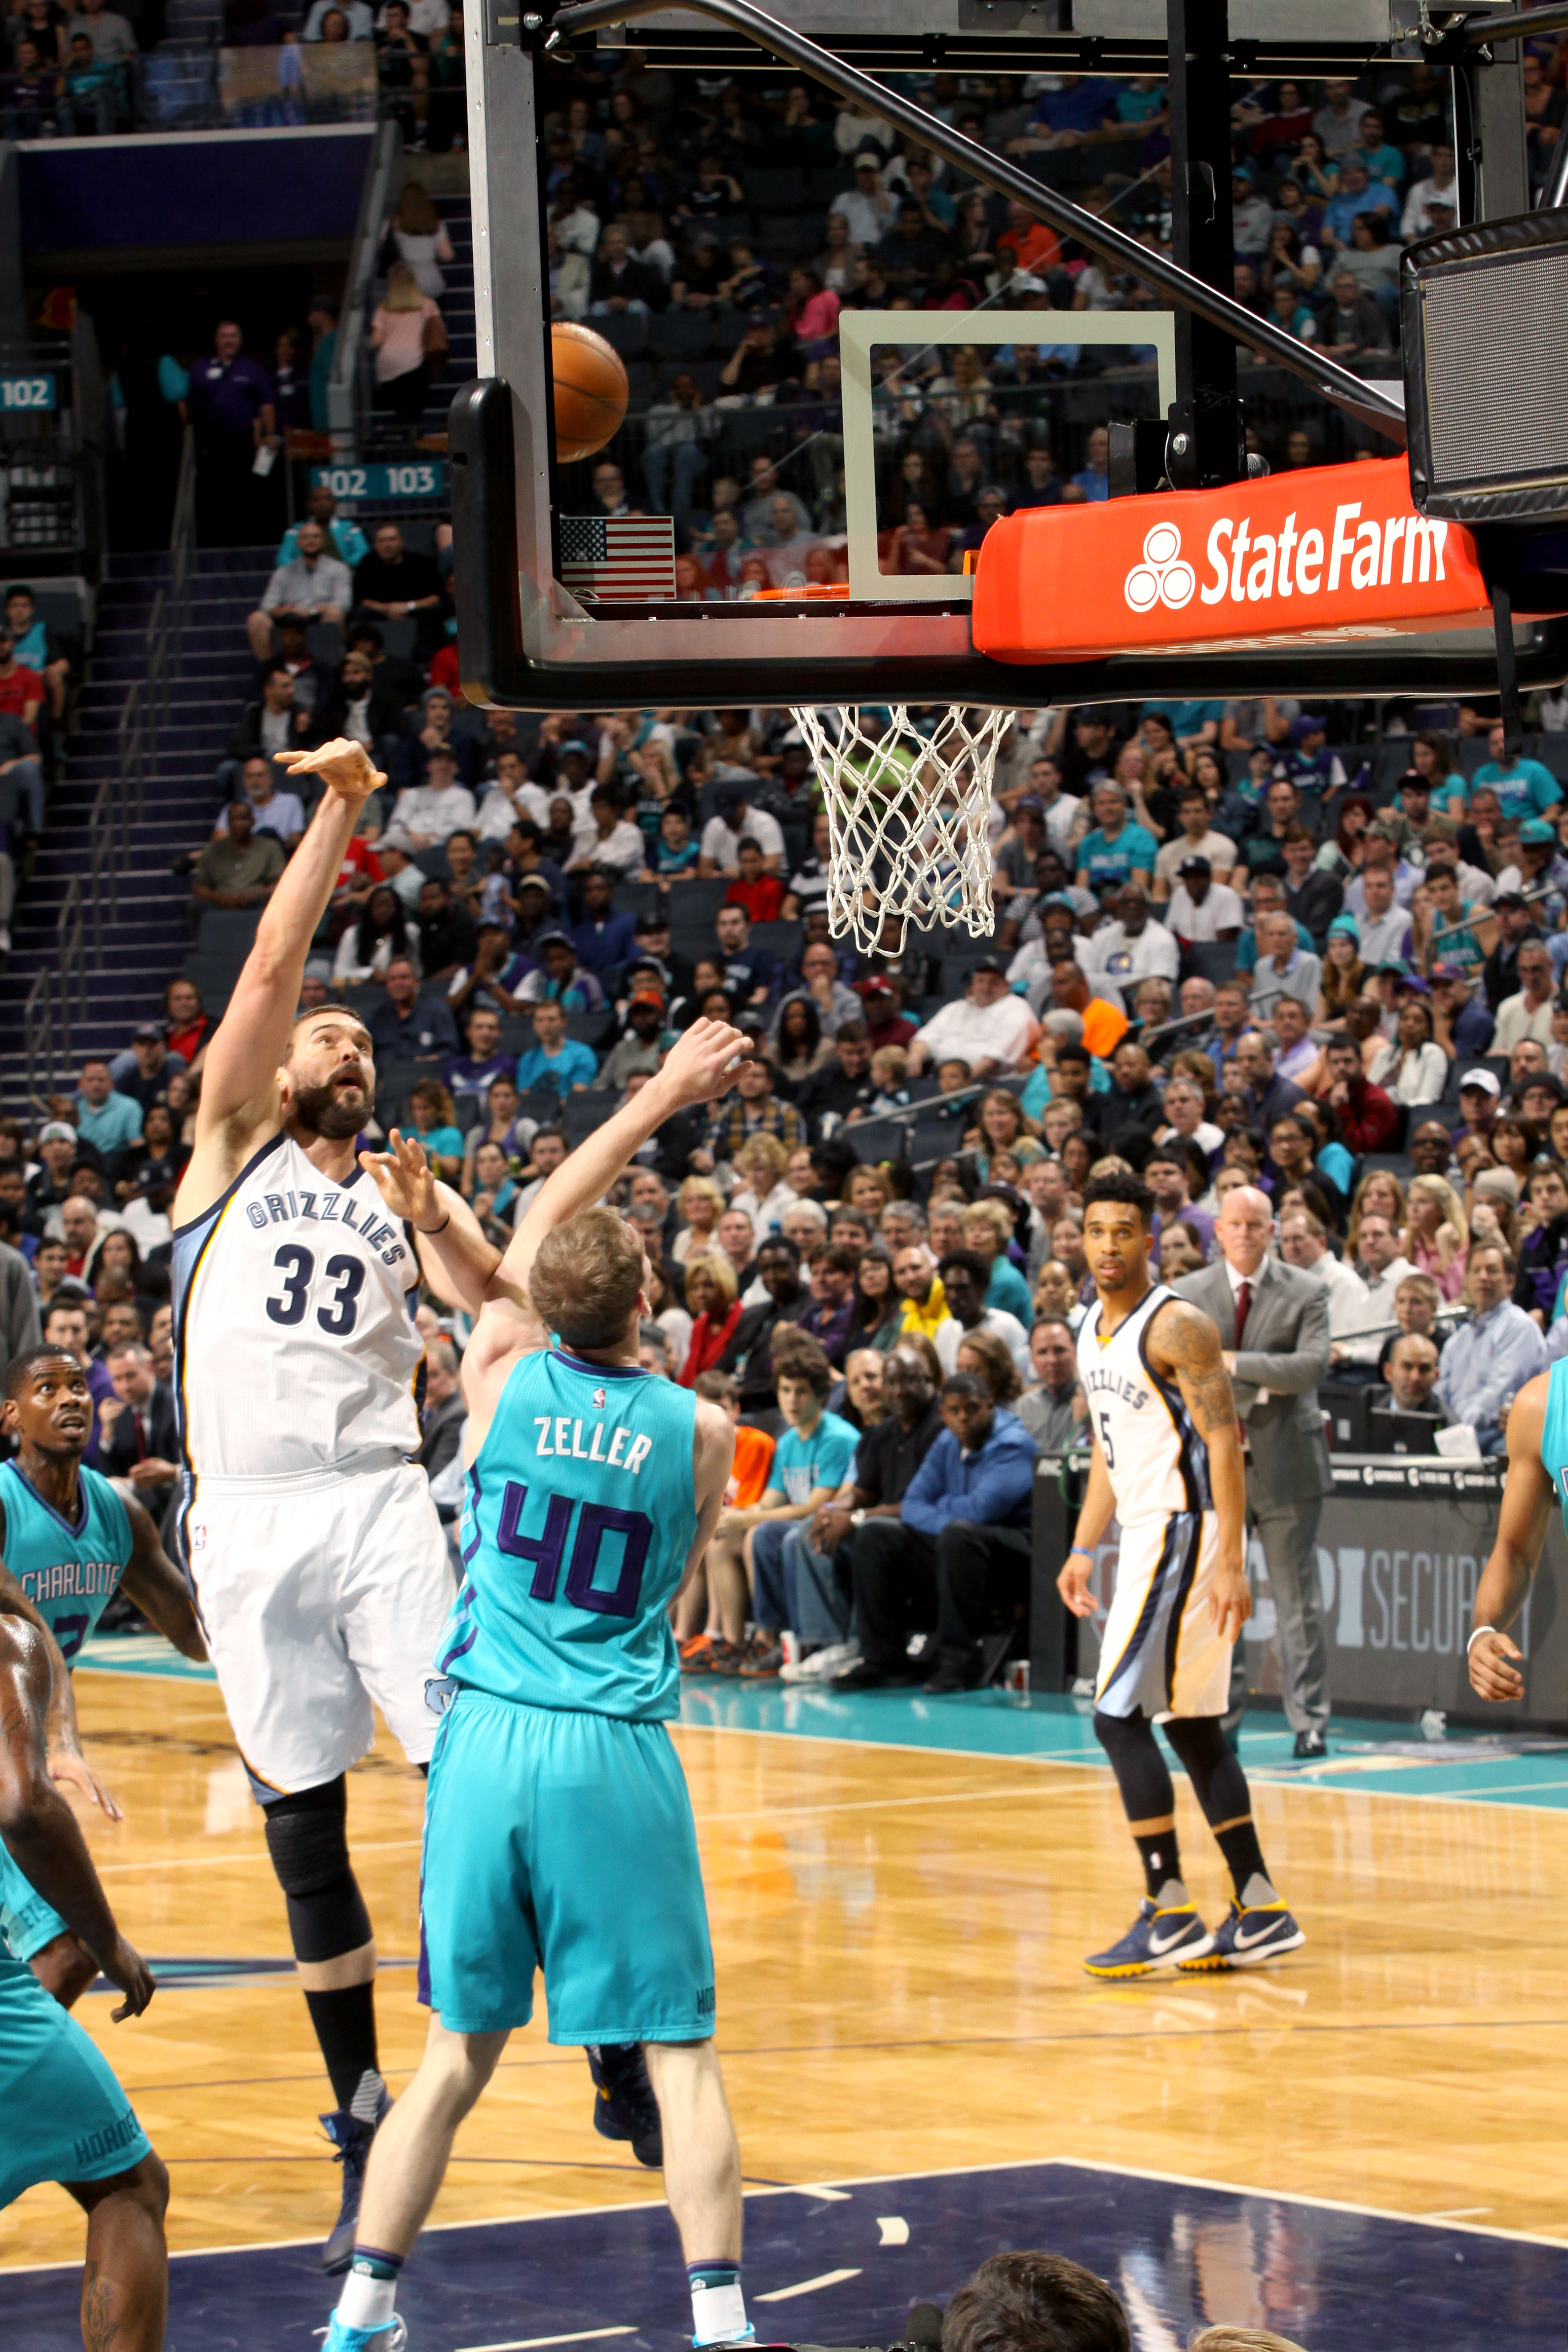 CHARLOTTE, NC - DECEMBER 26: Marc Gasol #33 of the Memphis Grizzlies shoots the ball during the game against the Charlotte Hornets on December 26, 2015 at Time Warner Cable Arena in Charlotte, North Carolina. (Photo by Kent Smith/NBAE via Getty Images)